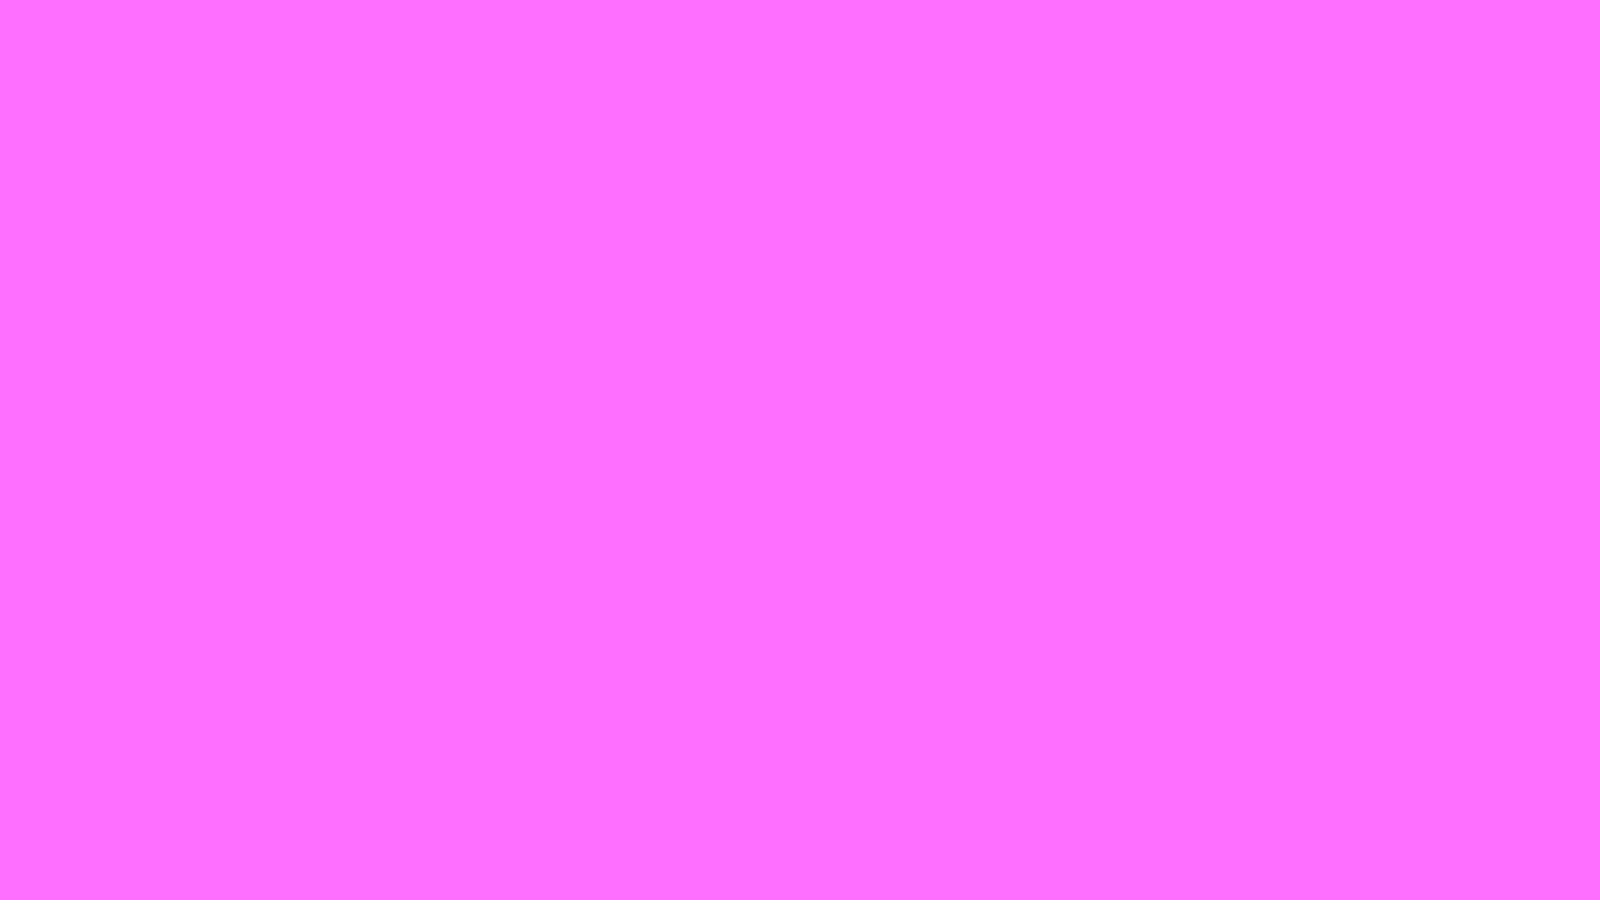 1600x900 Ultra Pink Solid Color Background